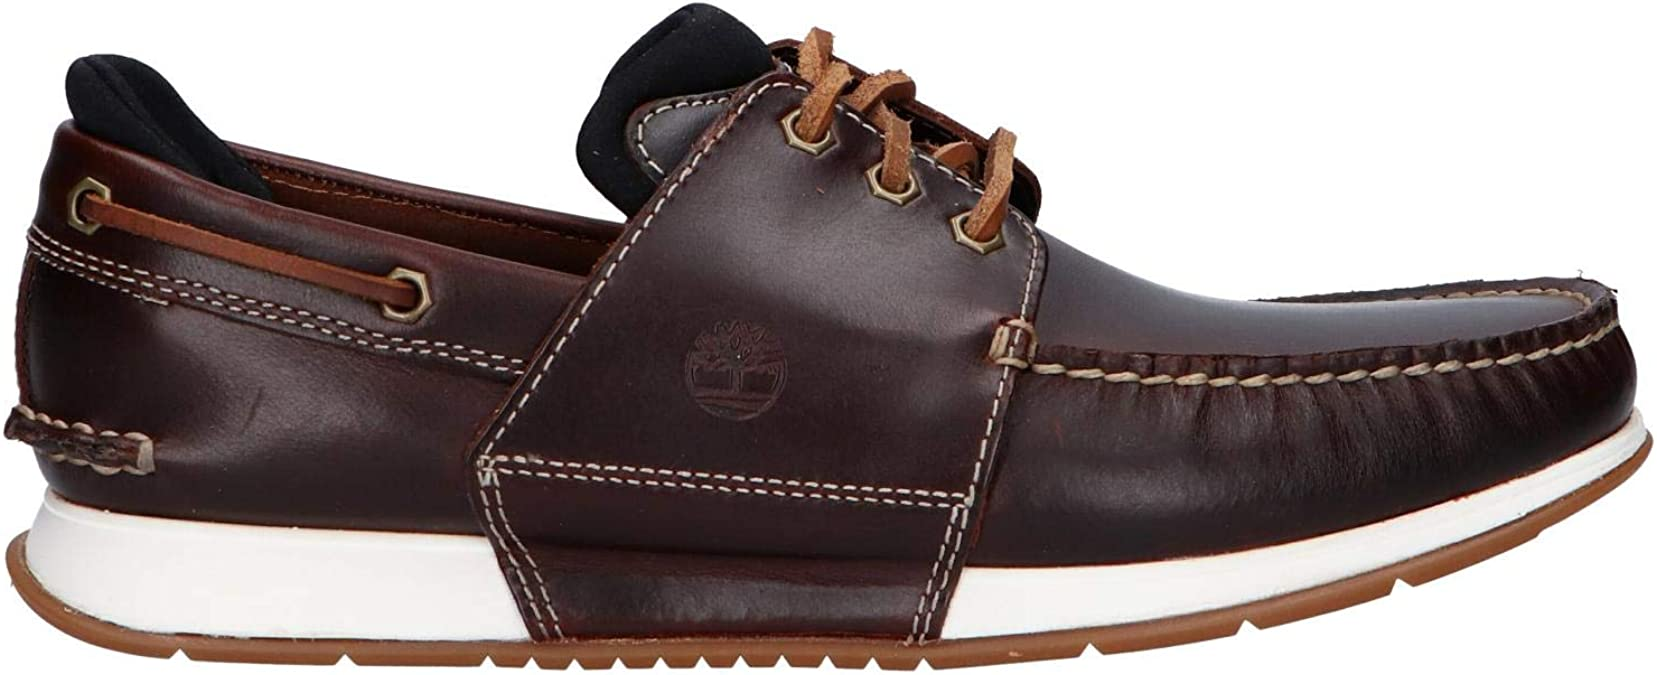 Timberland Men's Newport Bay 2 Eye Boat Shoes